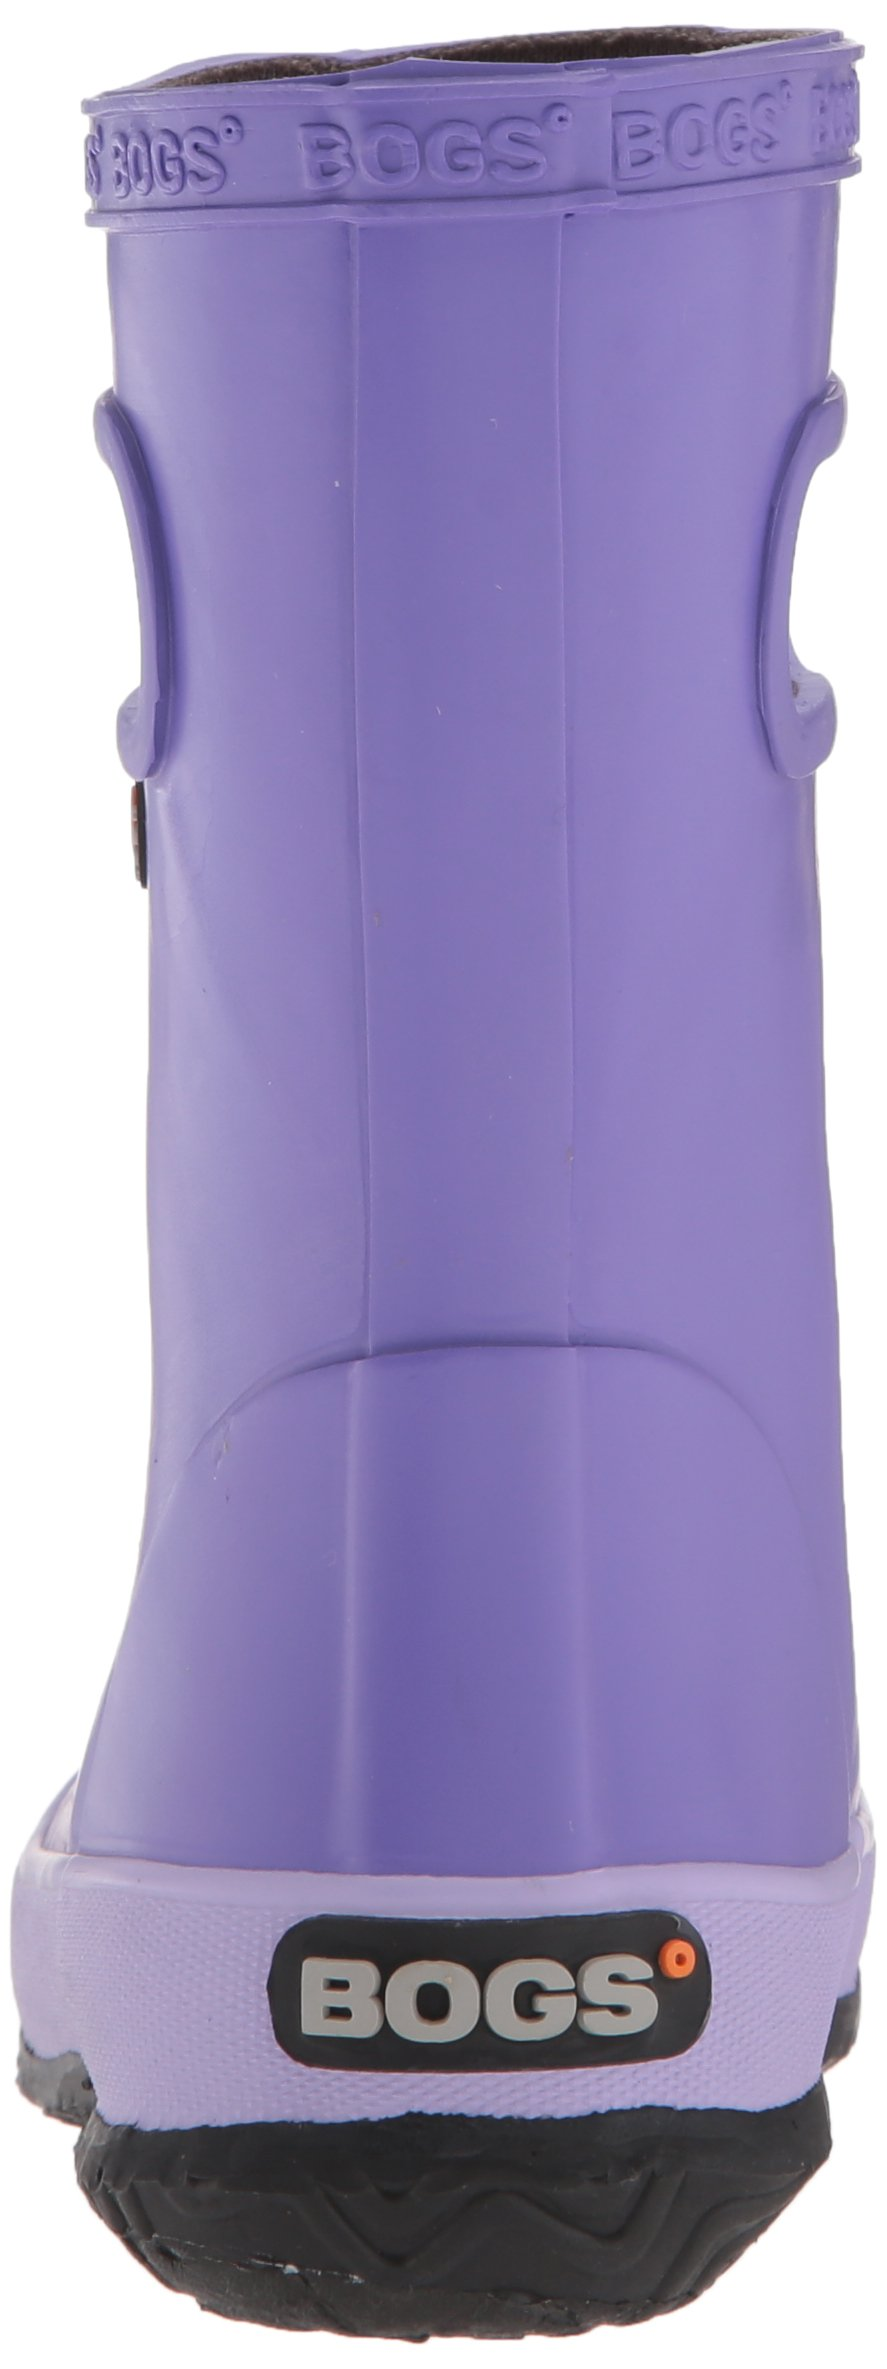 Bogs Kids' Skipper Waterproof Rubber Rain Boot for Boys and Girls,Solid Violet,11 M US Little Kid by Bogs (Image #2)